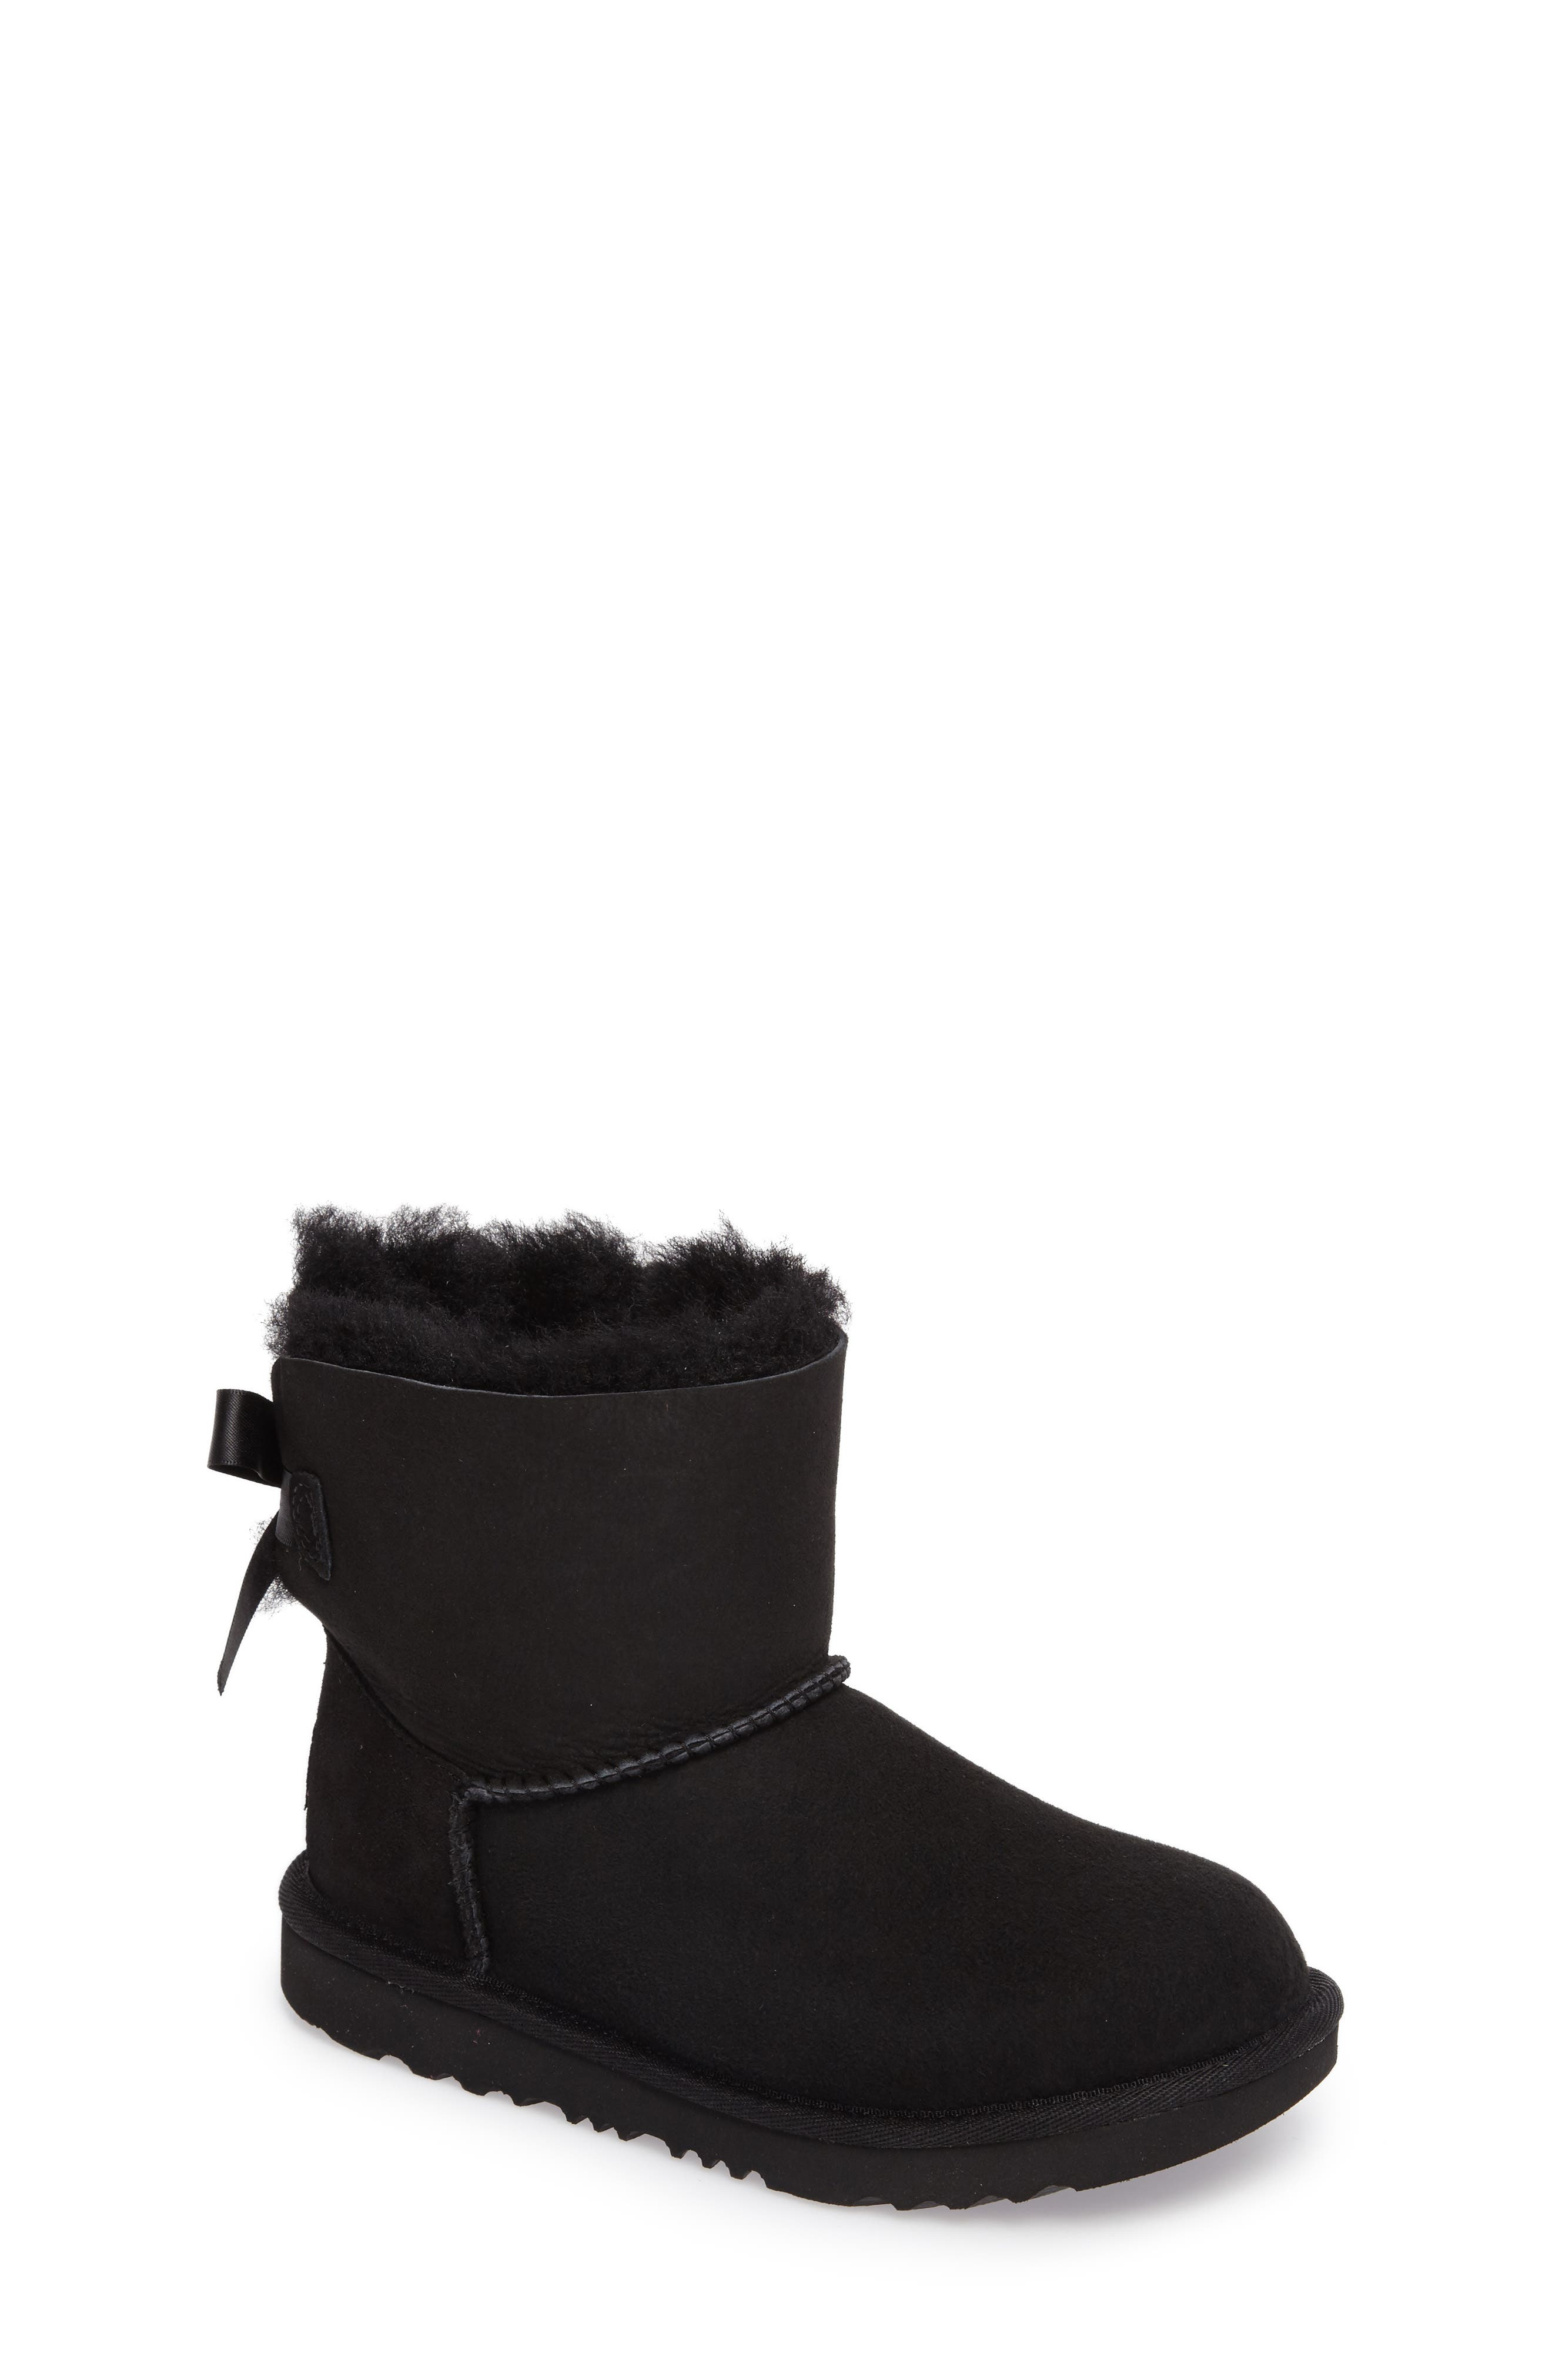 UGG<SUP>®</SUP>, Mini Bailey Bow II Water Resistant Boot, Main thumbnail 1, color, BLACK